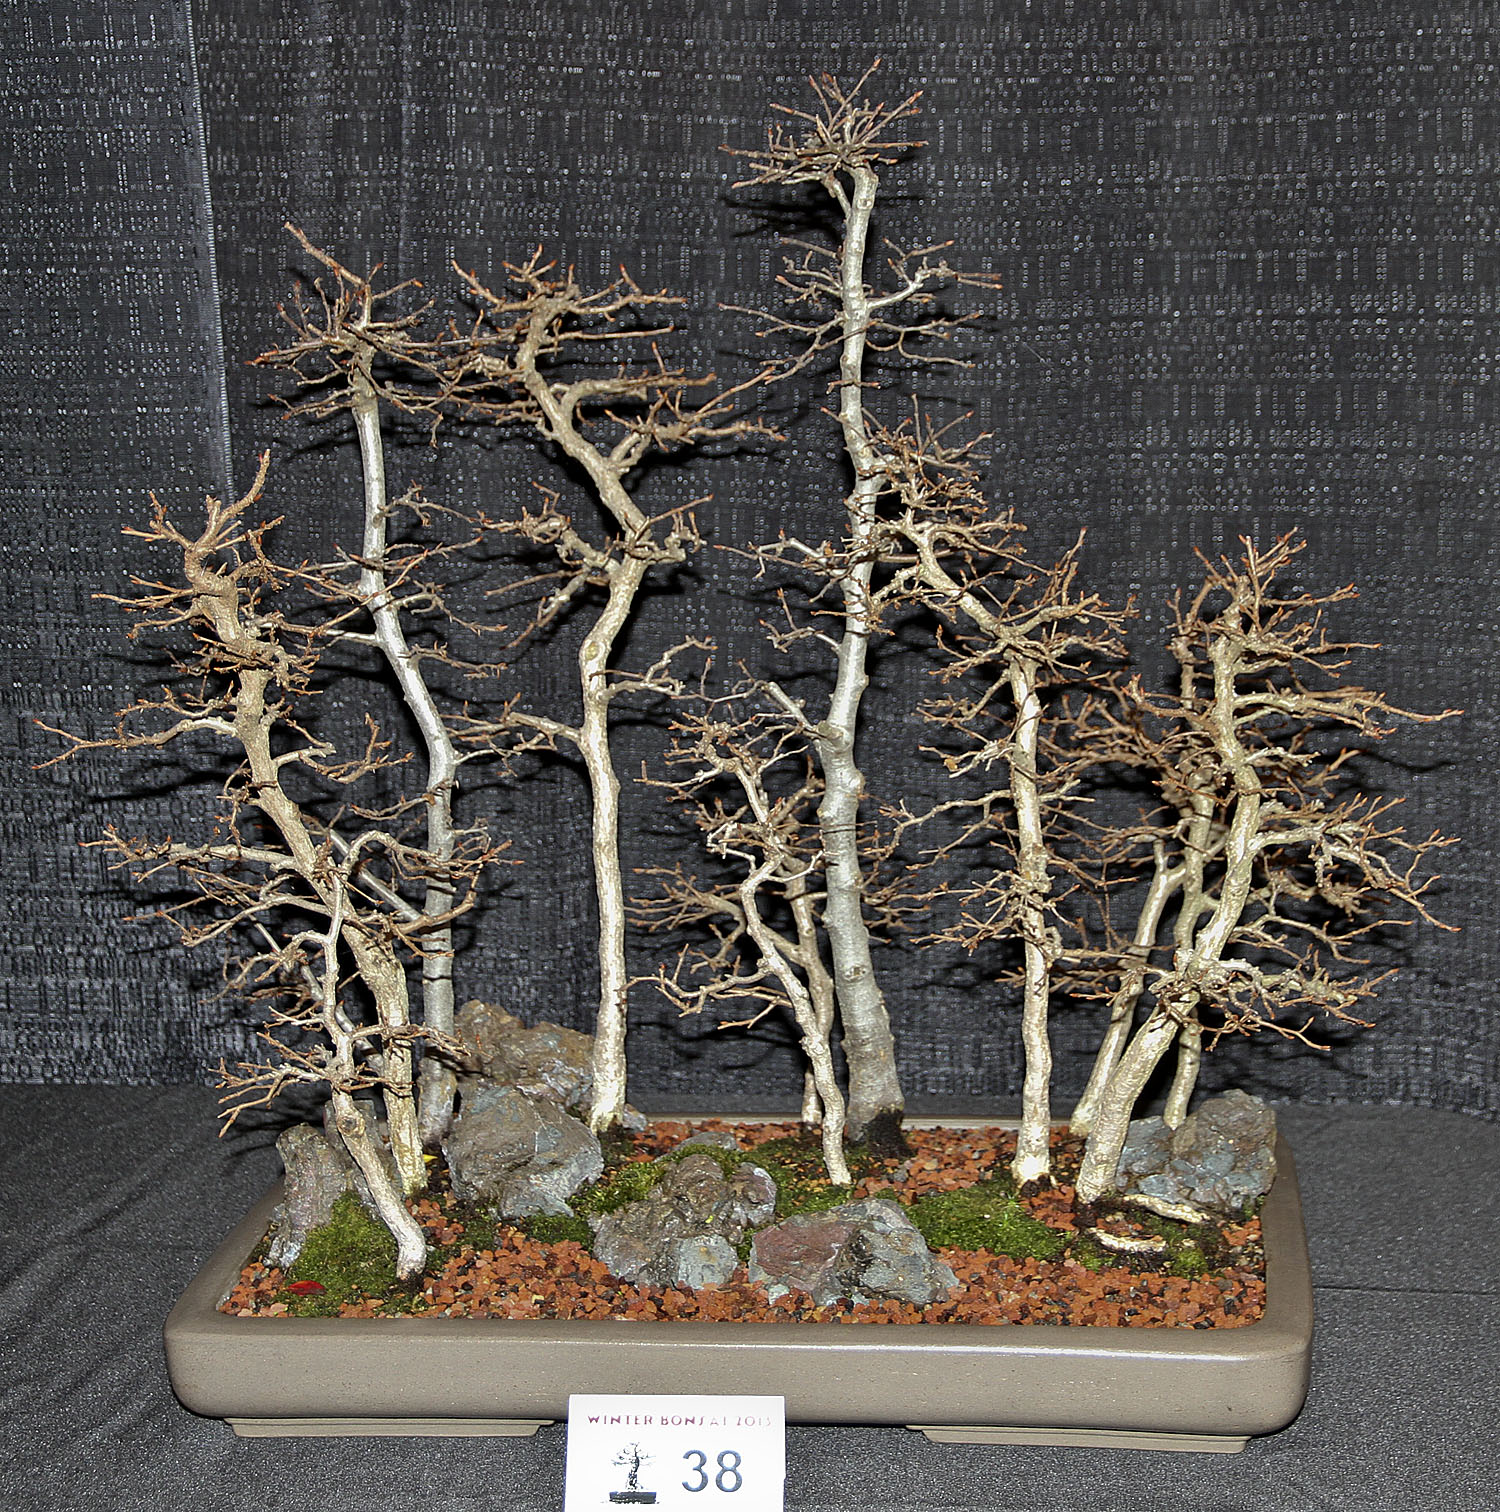 Bonsai In The World May 2013